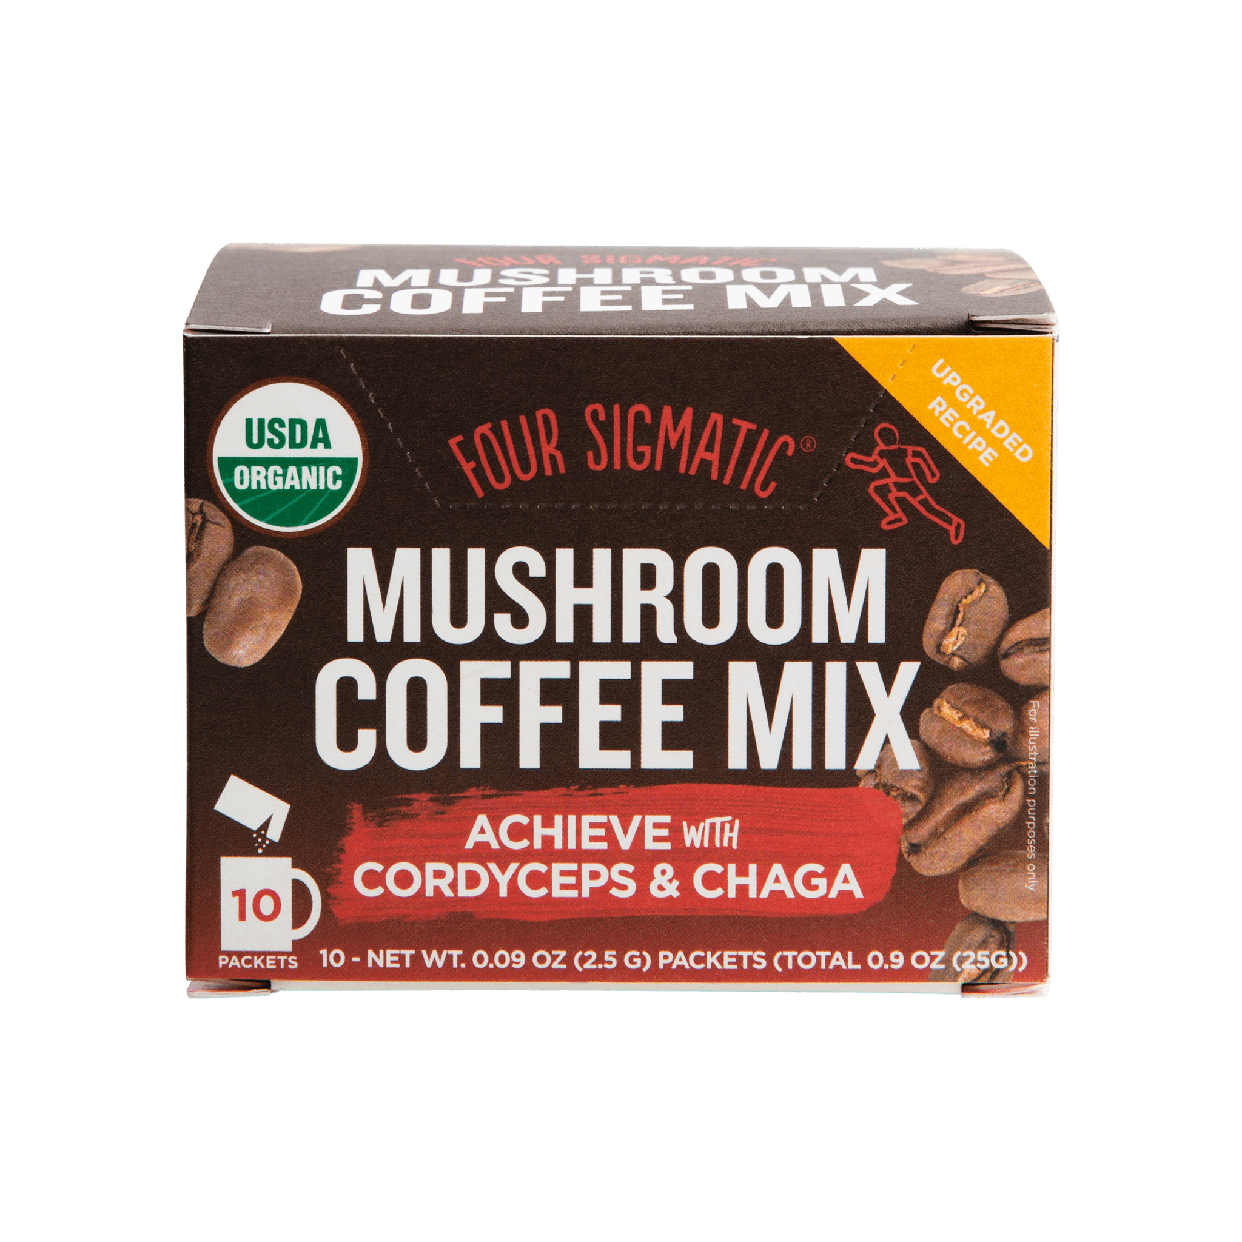 four sigmatic - mushroom coffee mix with cordyceps (box)